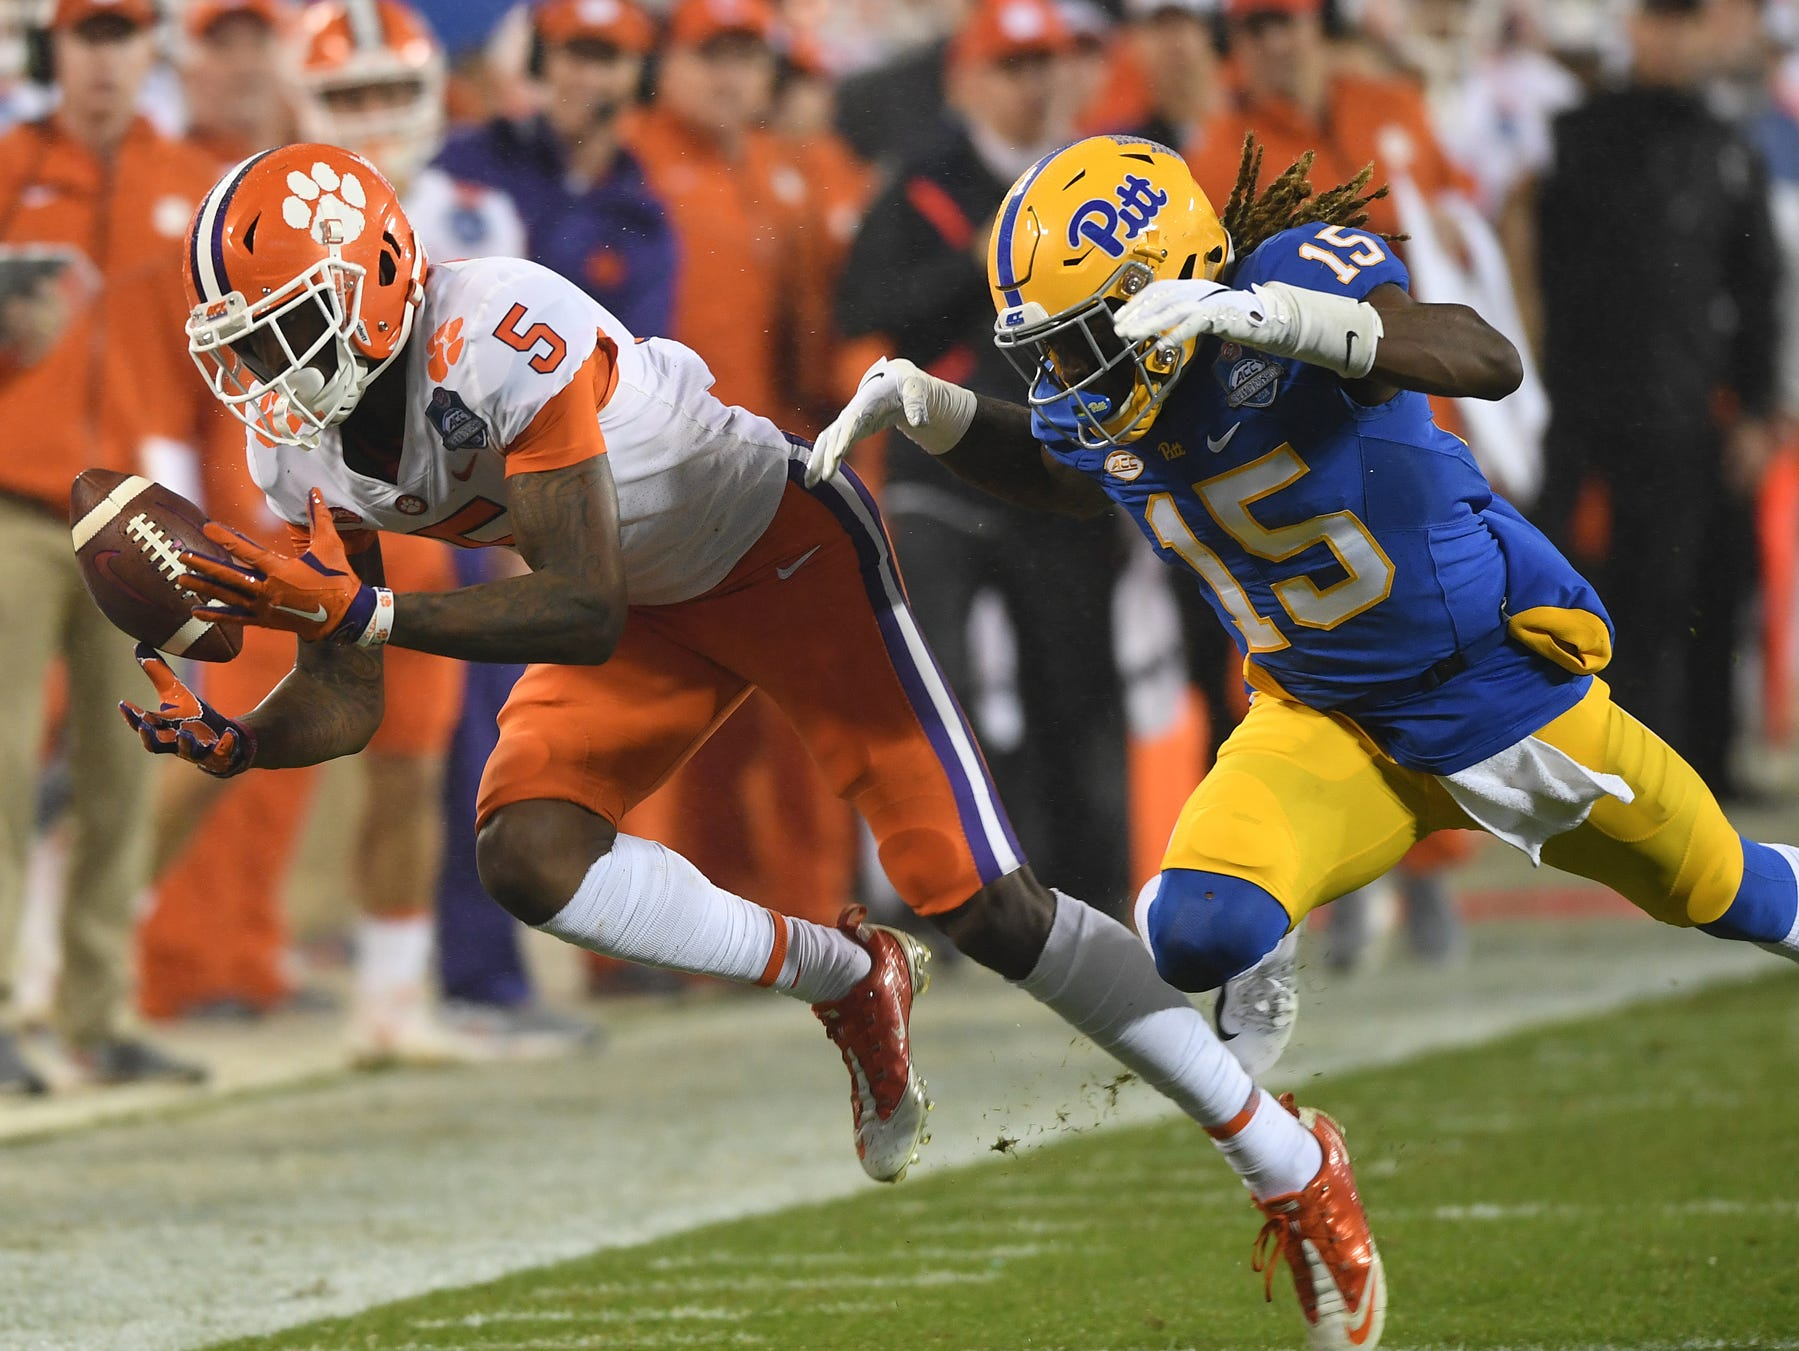 Clemson wide receiver Tee Higgins (5) can't come down with a pass while being defended by Pittsburgh defensive back Jason Pinnock (15) during the 1st quarter of the Dr. Pepper ACC Championship at Bank of America Stadium in Charlotte, N.C. Saturday, December 1, 2018.